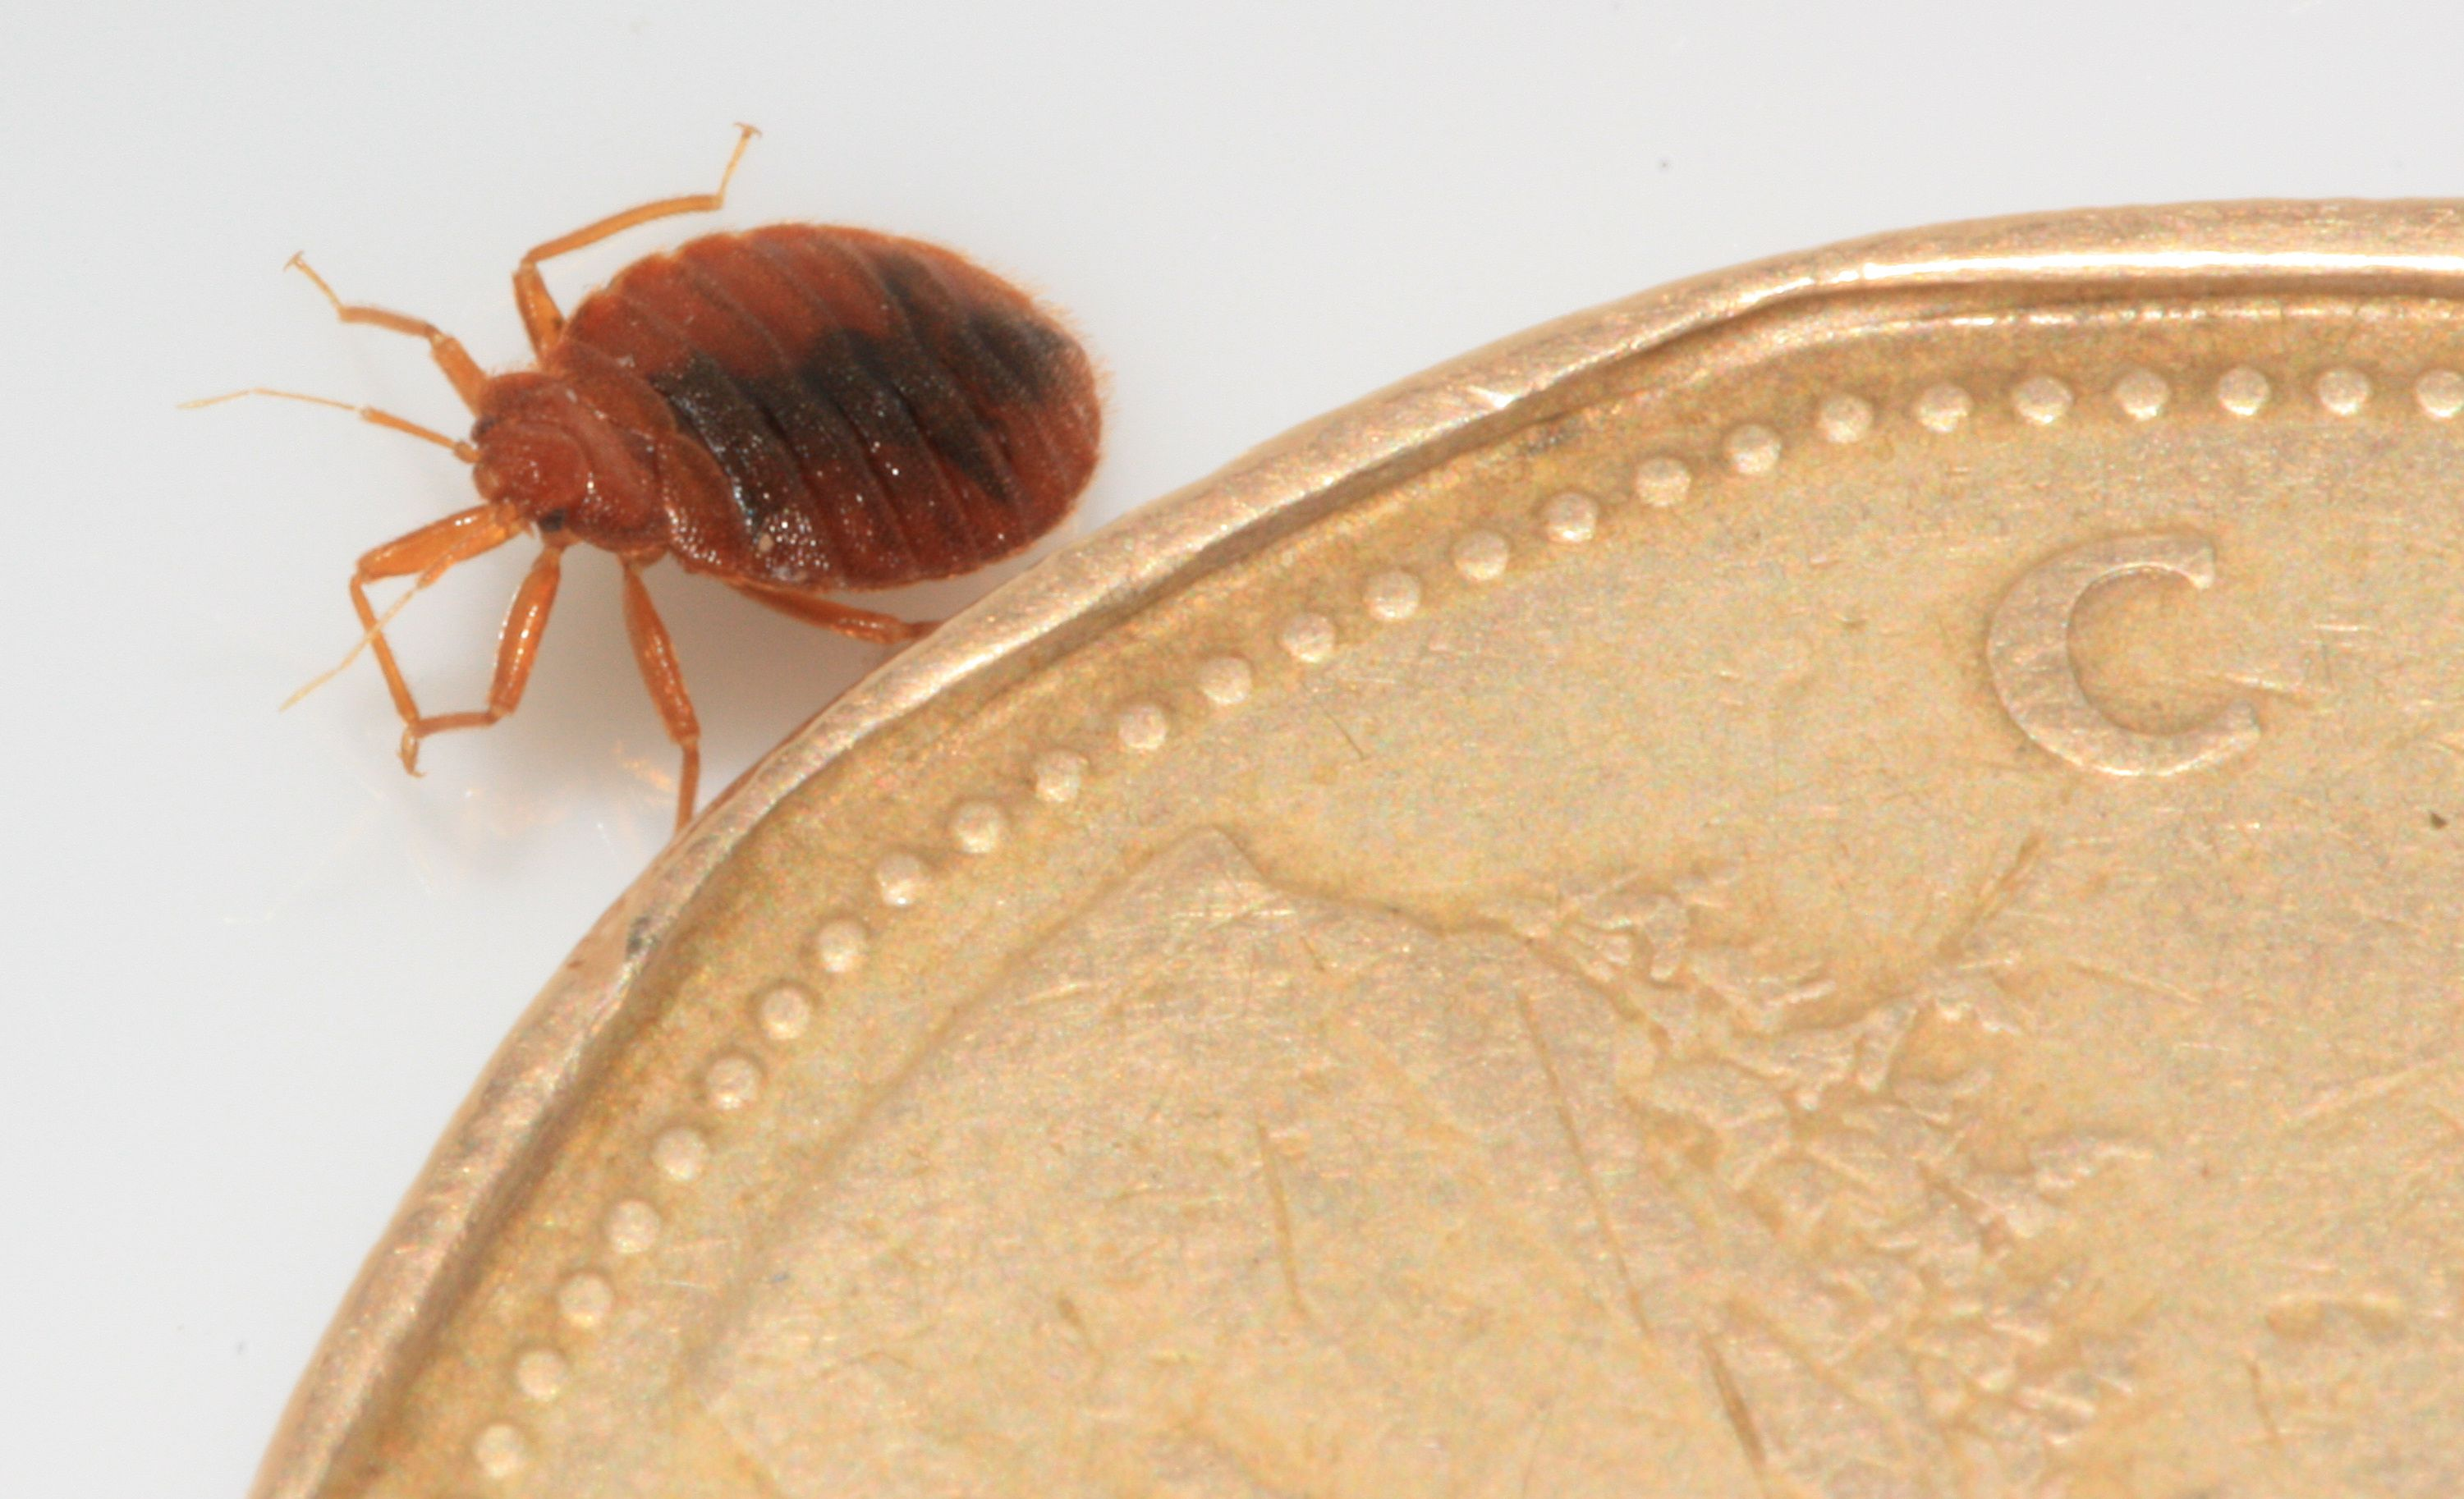 Bed Bug besides a Canadian dollar coin for perspective on